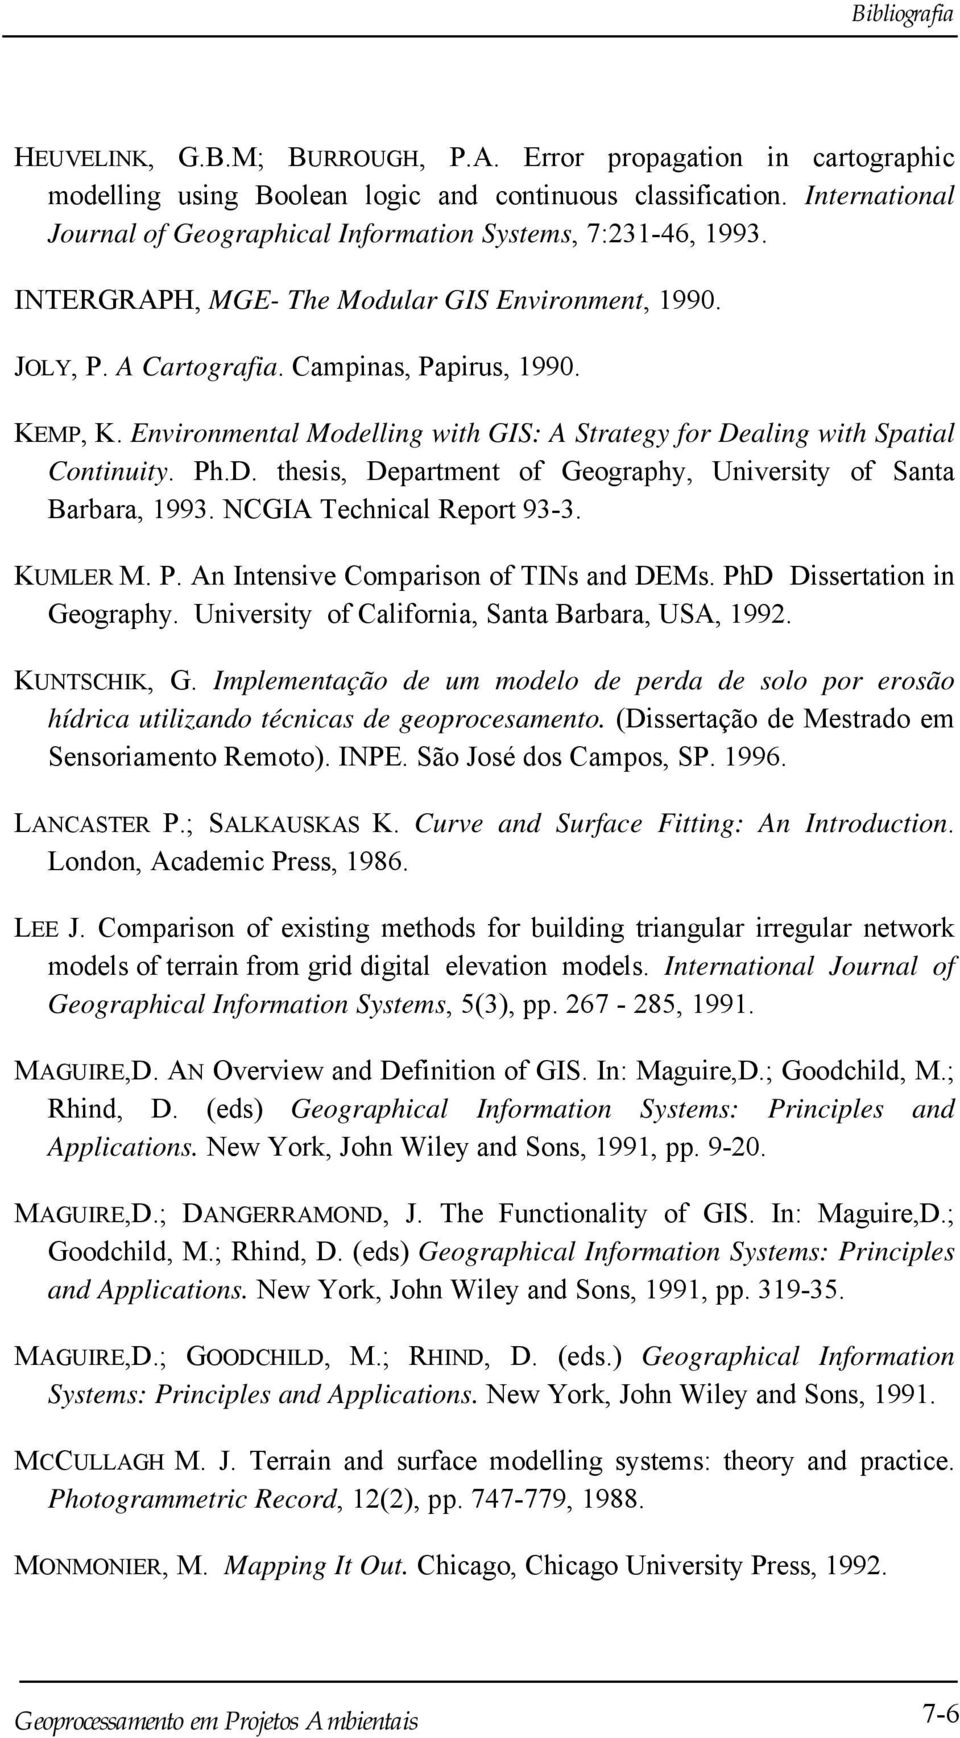 Environmental Modelling with GIS: A Strategy for Dealing with Spatial Continuity. Ph.D. thesis, Department of Geography, University of Santa Barbara, 1993. NCGIA Technical Report 93-3. KUMLER M. P. An Intensive Comparison of TINs and DEMs.